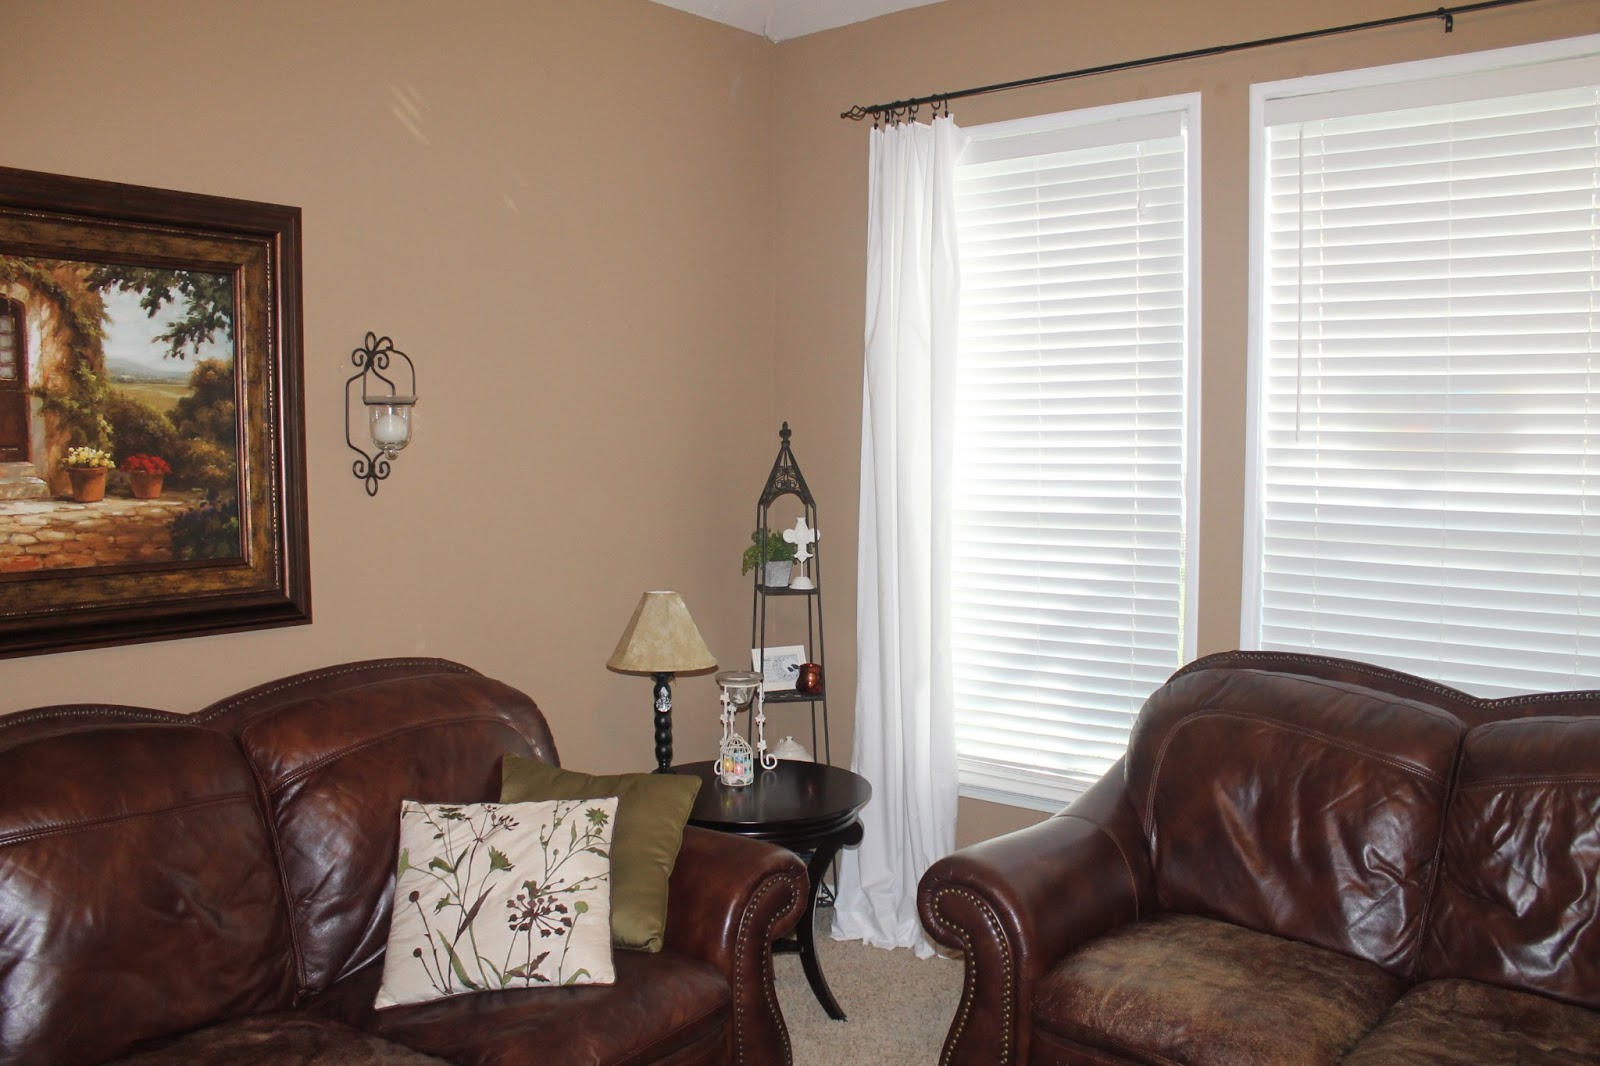 Living Room Curtains At Walmart Texas Decor Family Room Curtains For 5